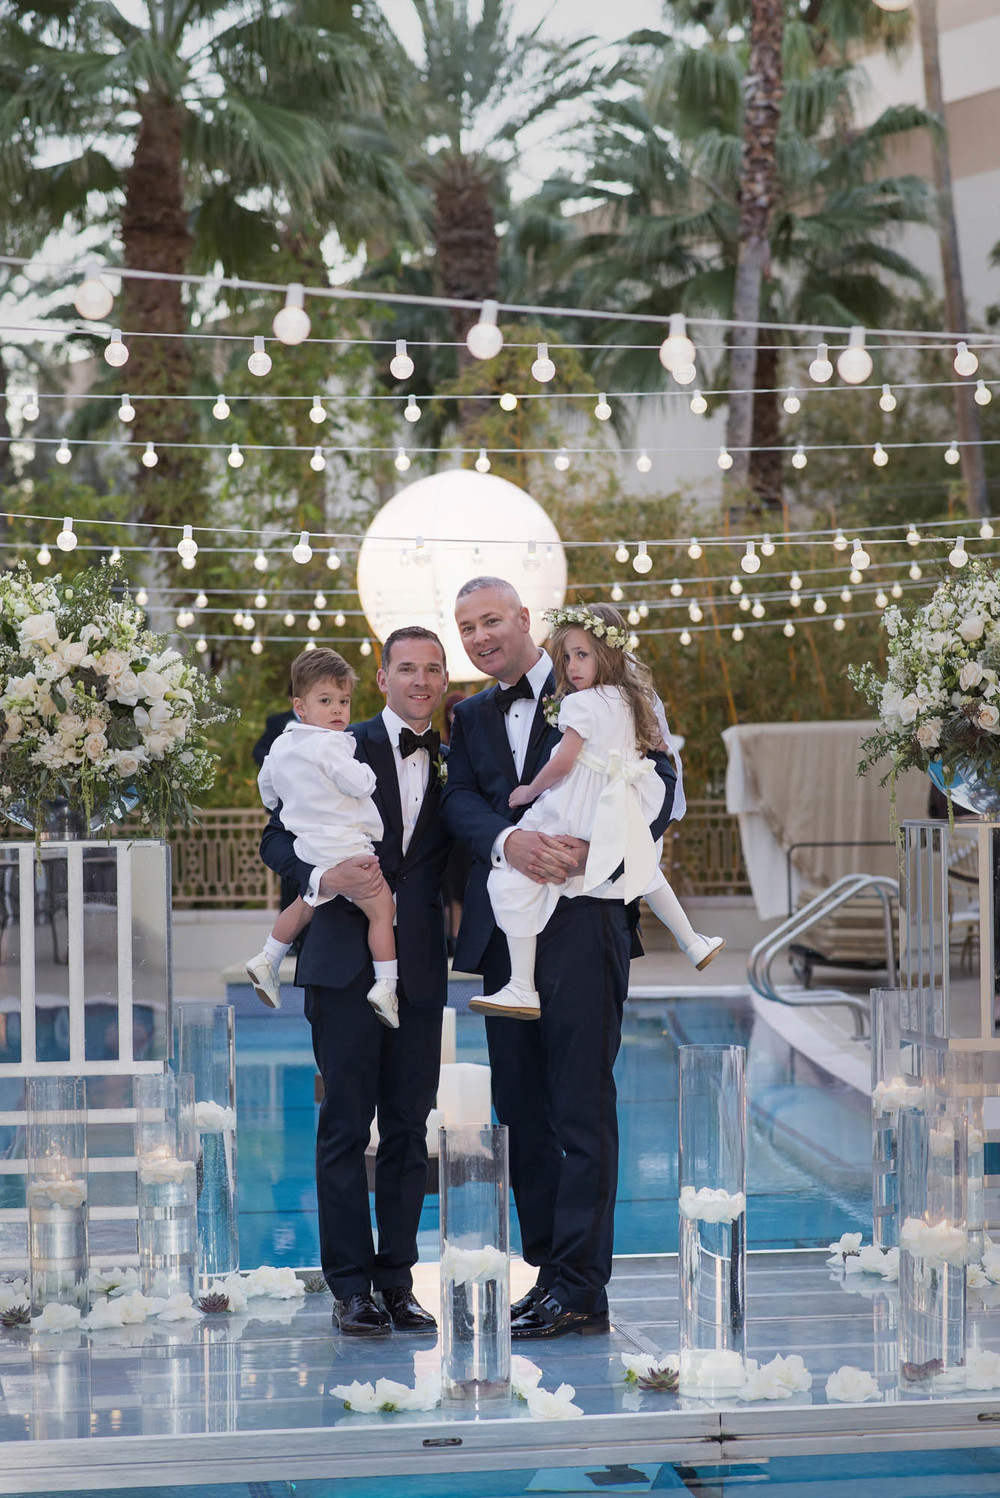 Grooms Fletcher and Greg with their children at their wedding at Red Rock Resort.   Wedding at Red Rock Resort by Las Vegas Wedding Planner Andrea Eppolito.  Images by Altf Photography.  Florals and decor by Destinations by Design.  Two grooms at a gay wedding in Las Vegas.